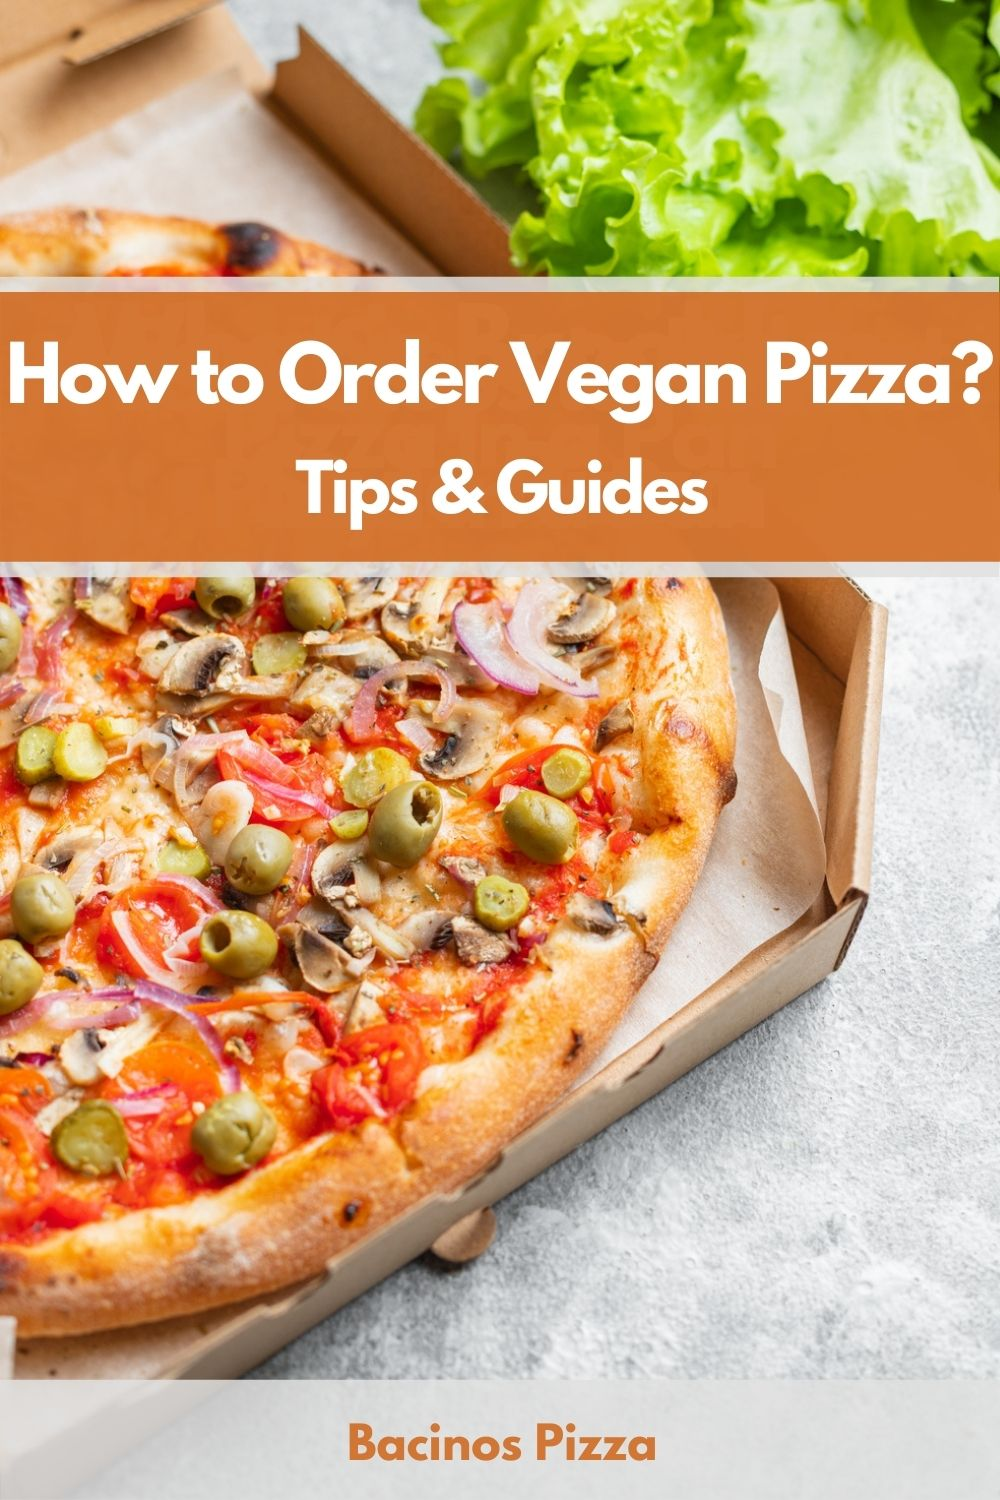 How to Order Vegan Pizza pin